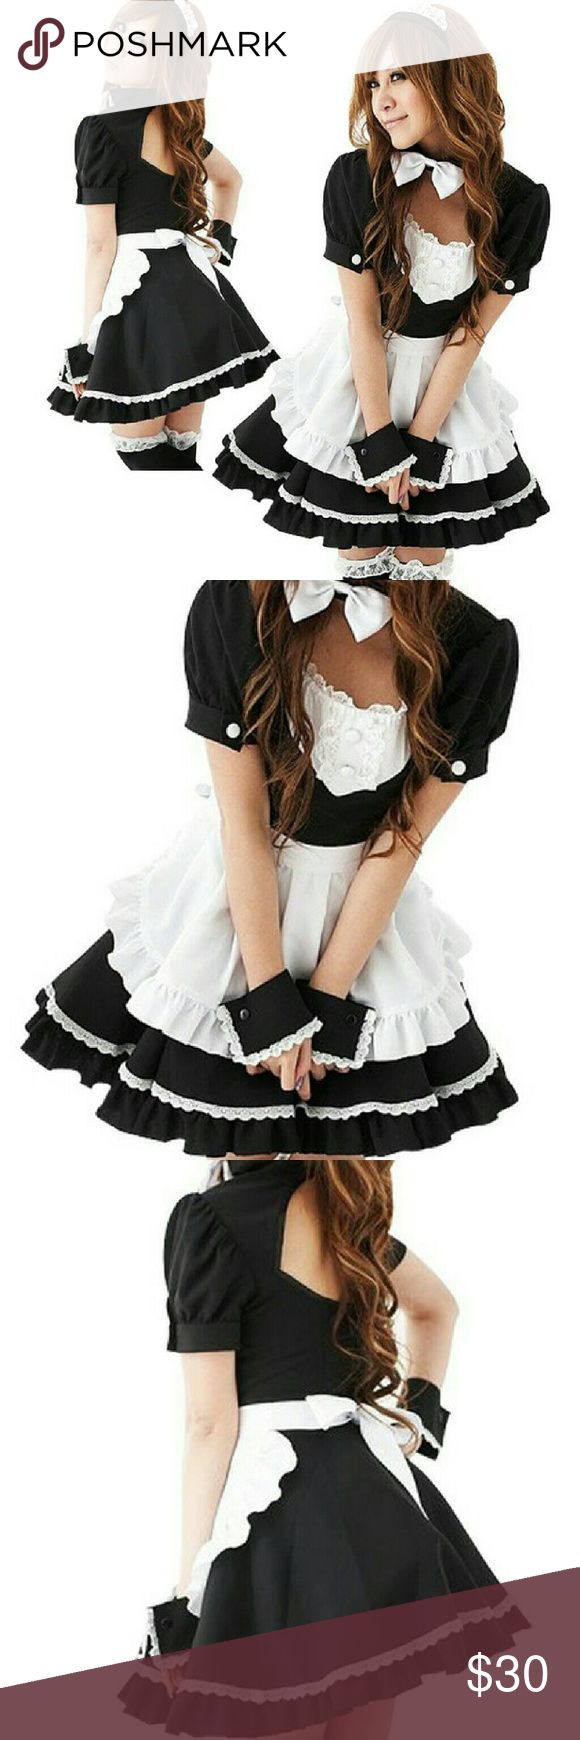 French Maid Dress Lolita Cosplay Costume Halloween Like New  Unworn 5 pieces costume: Dress with bow tie Apron Headband Cuffs X 2   Suggested size: One size fit most from XS to Medium Bust: 79 to 87cm  Waist: 64 to 70cm Hip: 87 to 95cm  Bought during my trip to Japan Great for Halloween or cosplay Skirts Skirt Sets